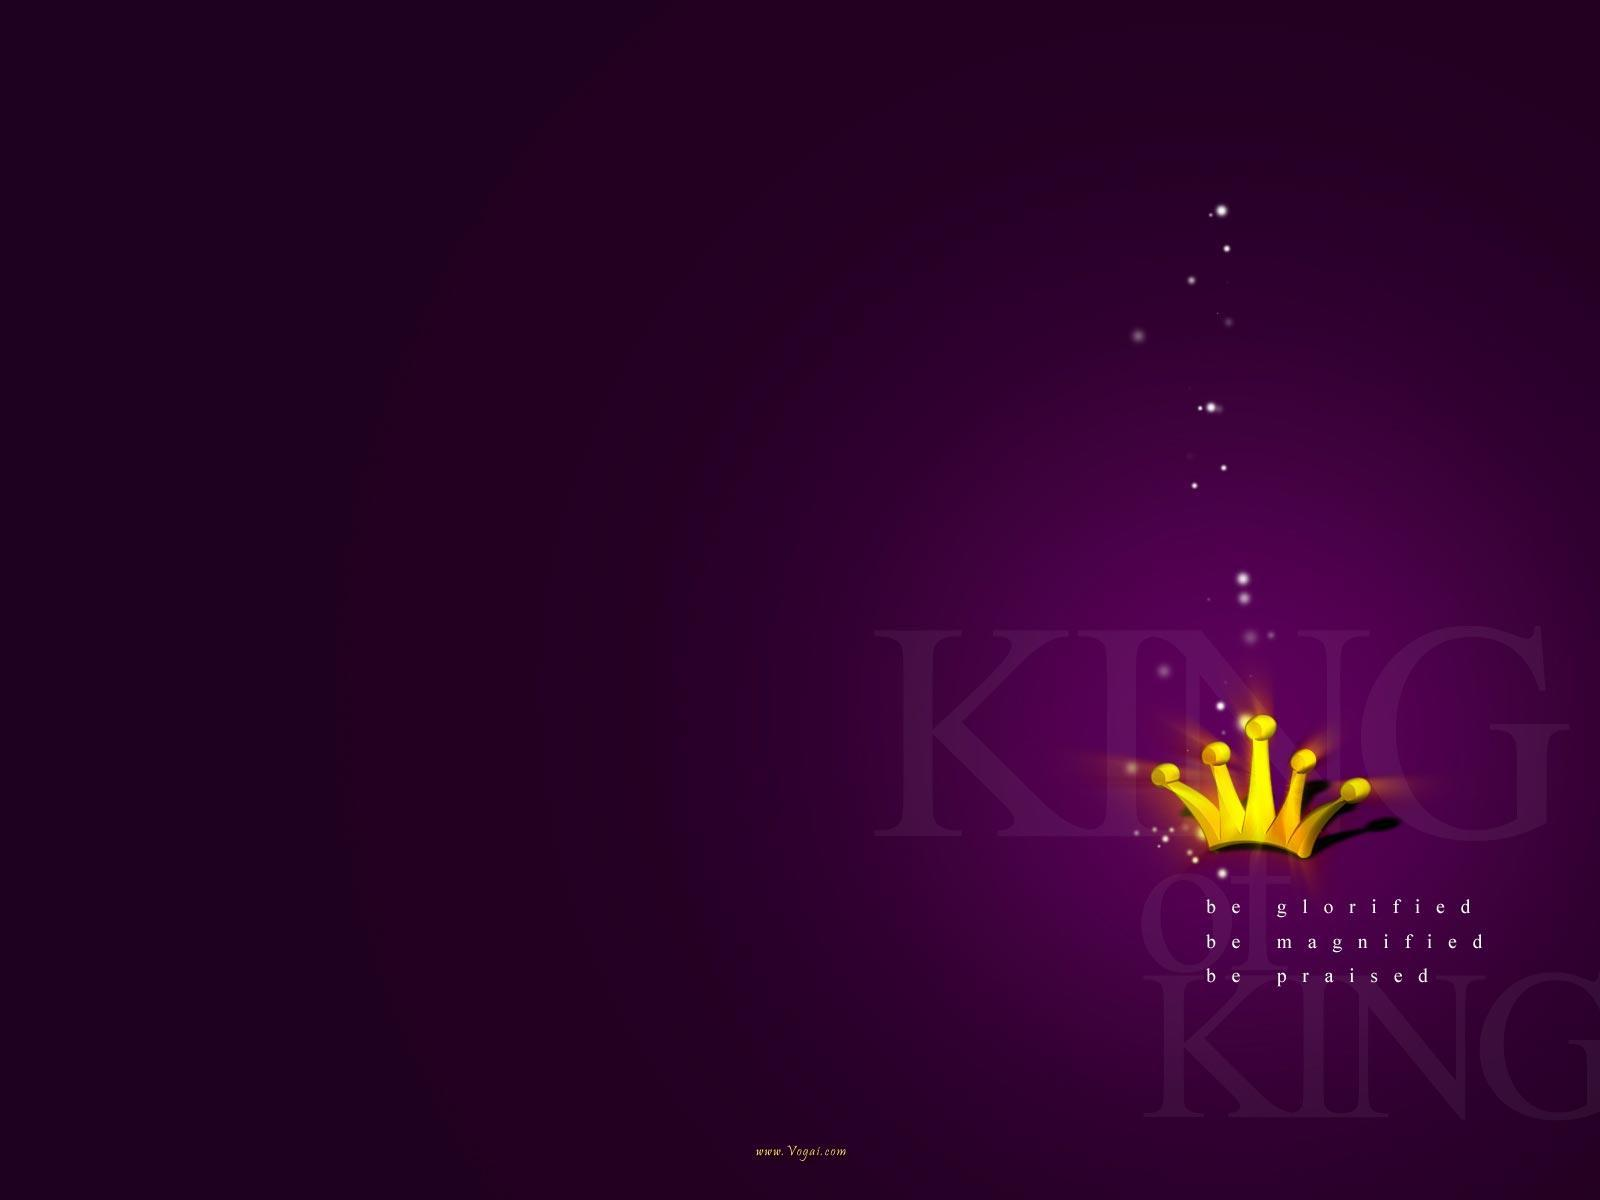 king of kings wallpapers wallpaper cave